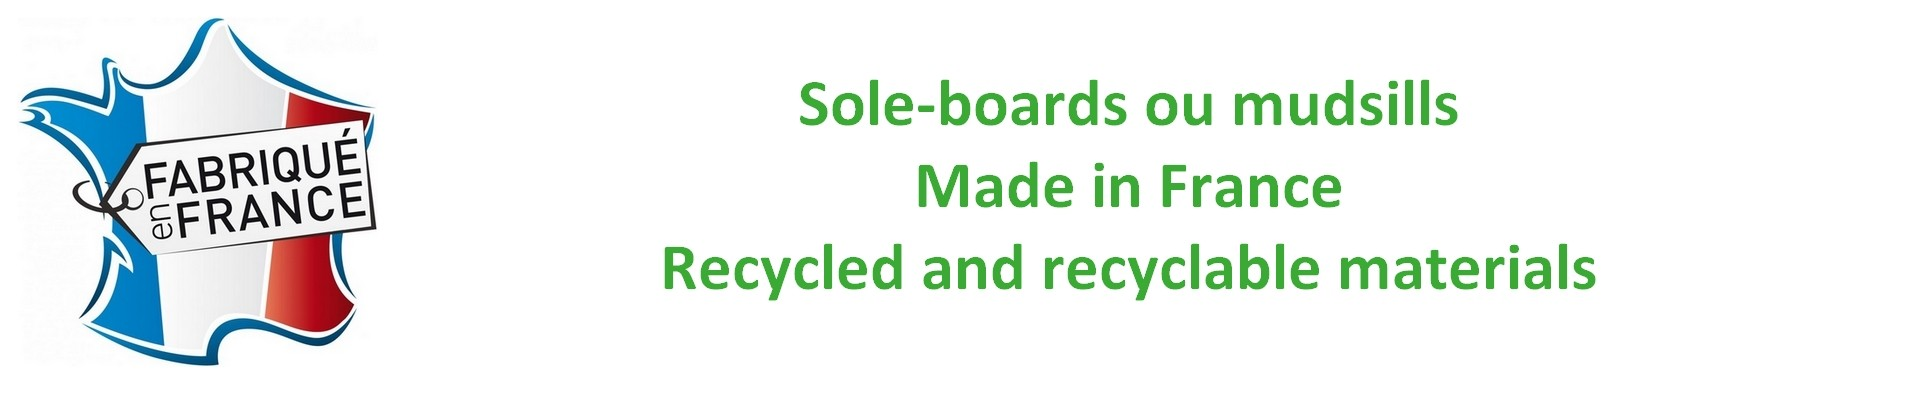 Sole-boards or mudsill, made in France, Recycled and recyclable plastics